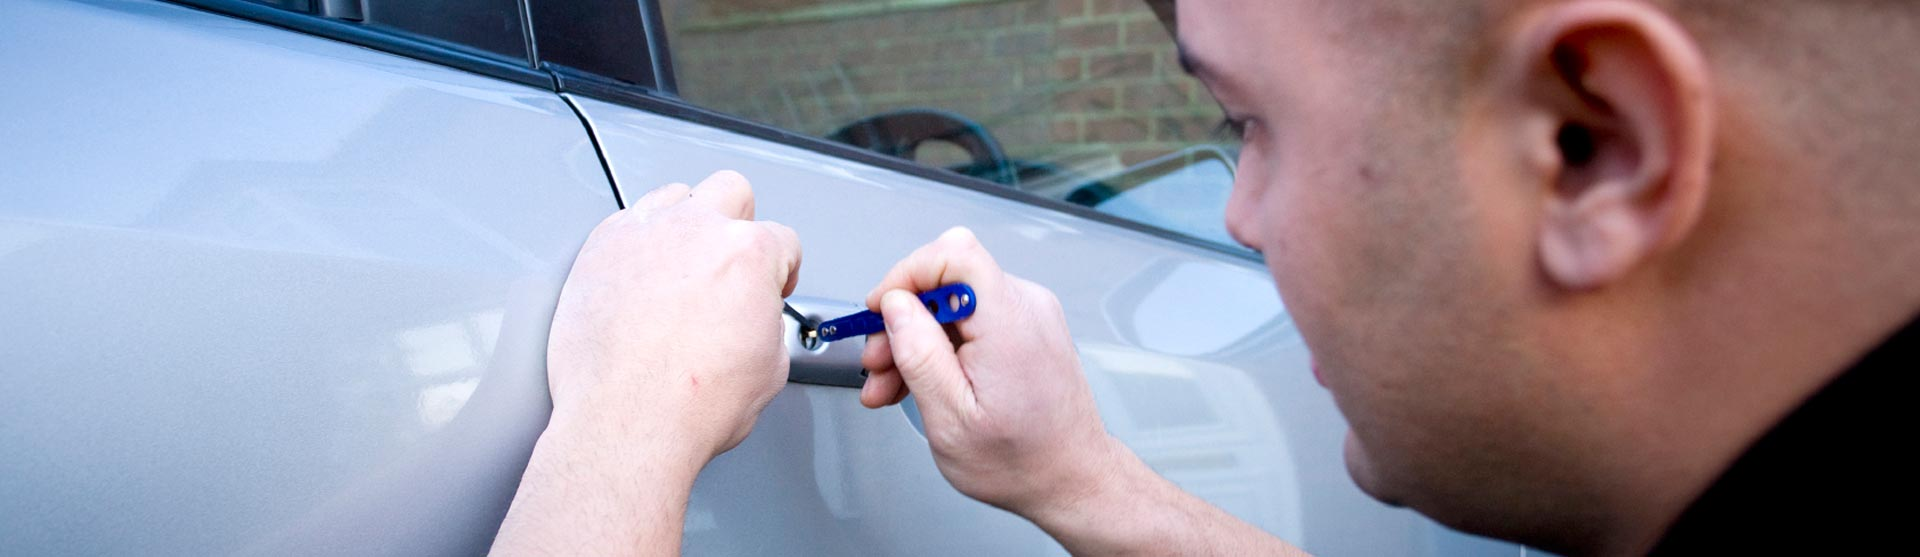 Pasadena: Commercial Locksmith, Residential Locksmith and Automotive Locksmith